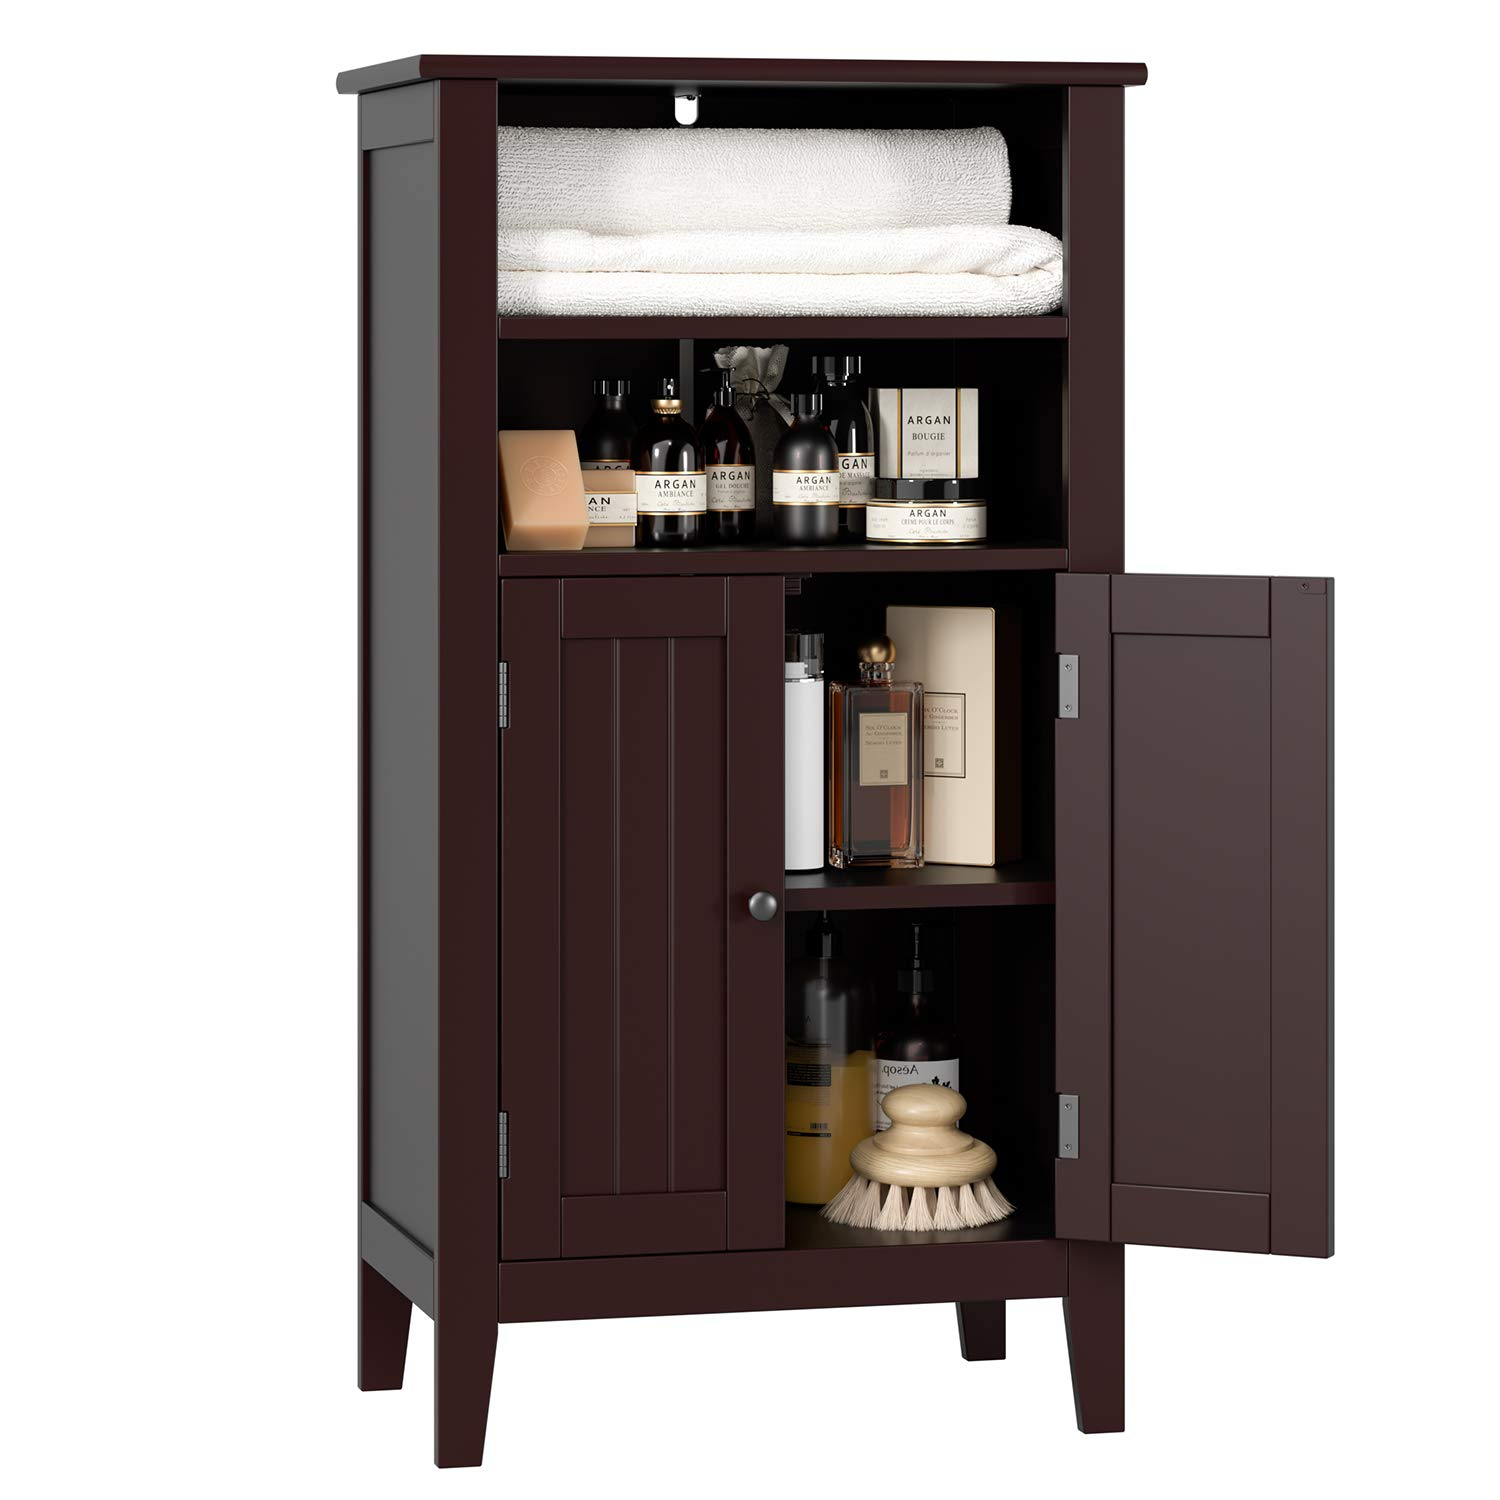 HOMFA Bathroom Floor Cabinet Wooden Storage Organizer with Double Doors Adjustable Shelf Free Standing Kitchen Cupboard for Home Office, 19.6L x 11.8W x 36.2H Dark Brown by Homfa